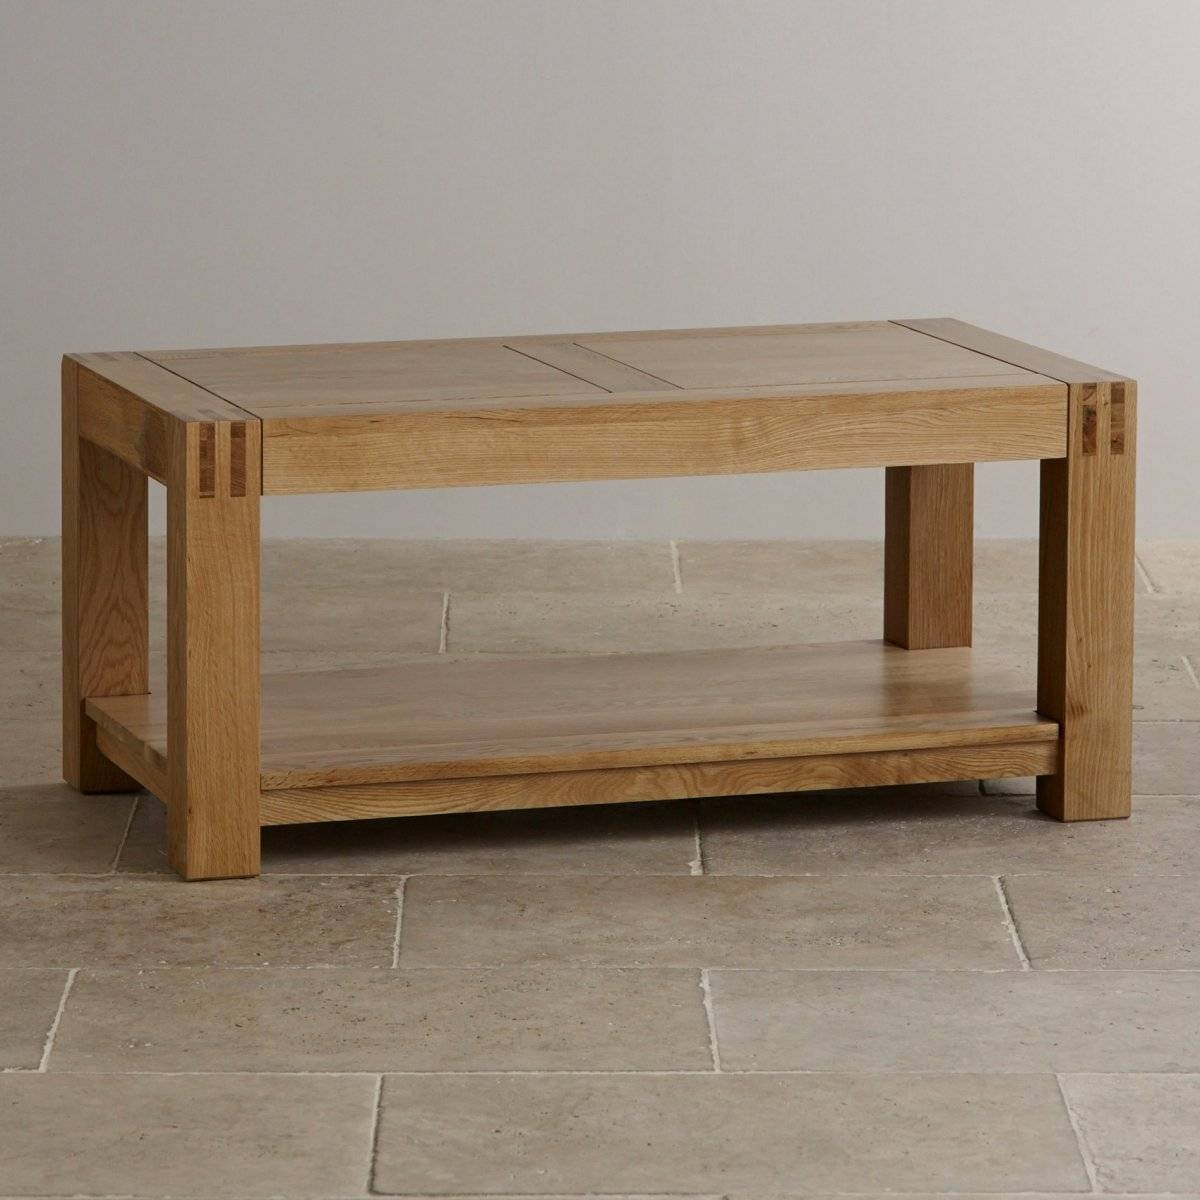 Alto Natural Solid Oak Coffee Table | Living Room Furniture with regard to Chunky Oak Coffee Tables (Image 4 of 30)